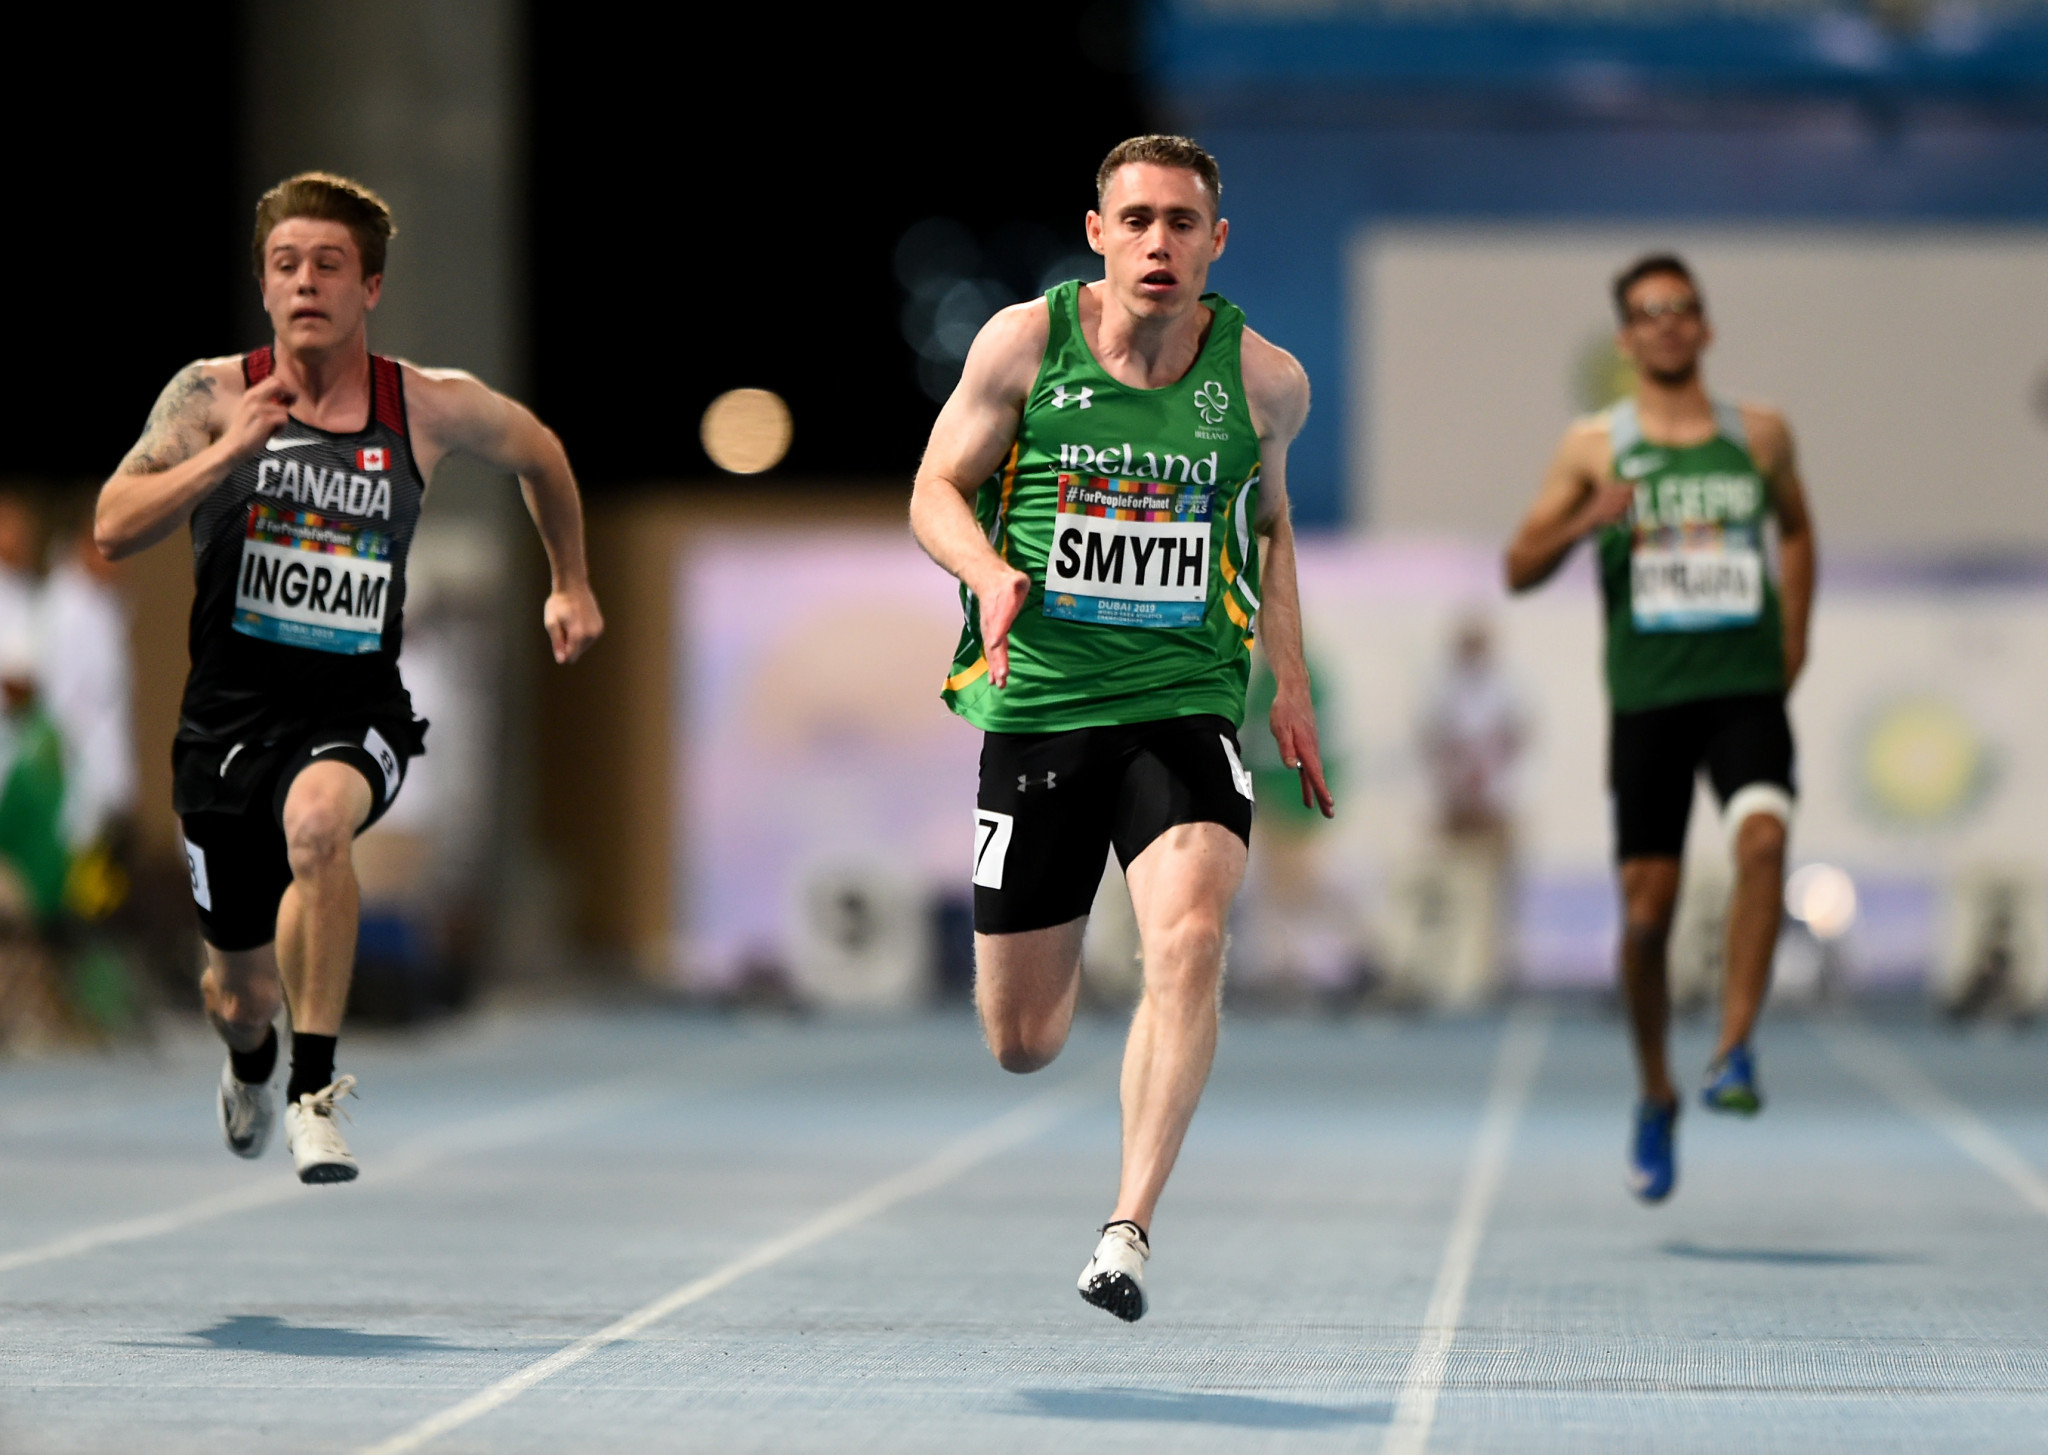 Ireland's Jason Smyth, pictured winning his most recent global title in the T13 100m final at the 2019 World Para Athletics World Championships in Dubai, plans to defend his Paralympic title in Tokyo this summer ©Getty Images